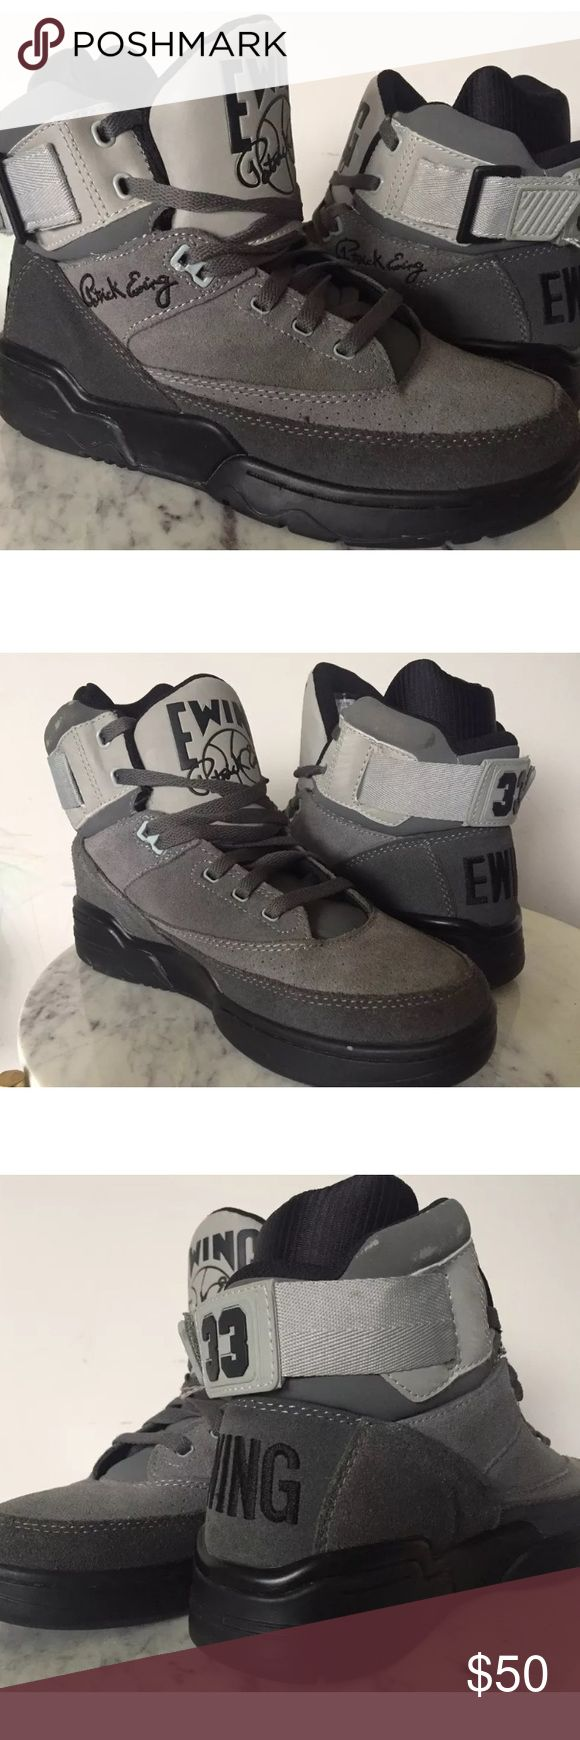 MENS PATRICK EWING SUEDE HIGH TOP SHOES Sz 8 MENS PATRICK EWING SUEDE HIGH TOP SHOES, SIZE 8, COLOR GRAY. IN GOOD USED CONDITION WITH LITTLE WEAR PLEASE SEE PICTURES FOR DETAILS. **BOX NOT INCLUDED** Shoes Sneakers